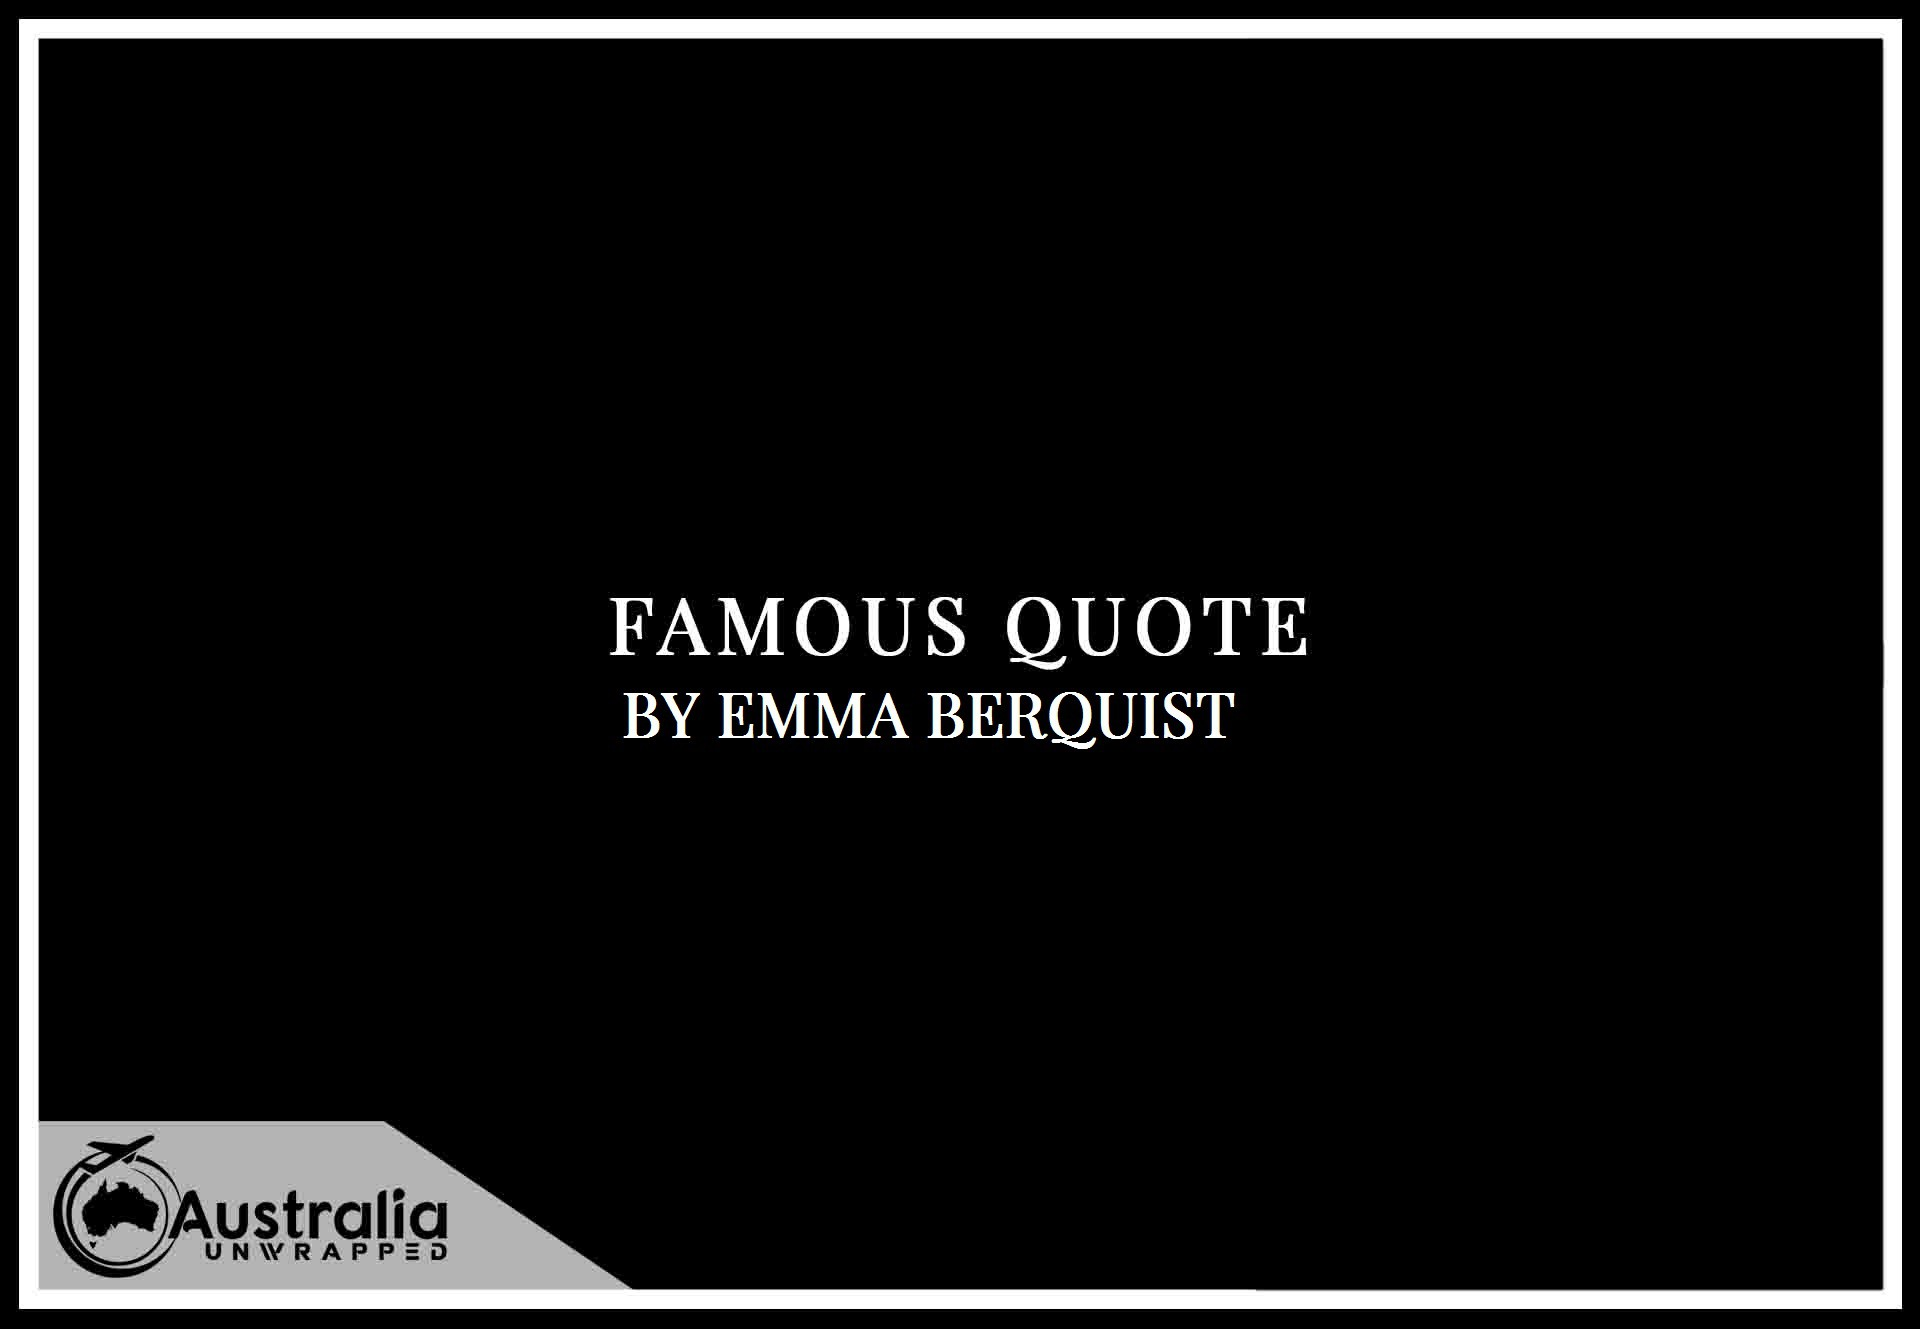 Emma Berquist's Top 1 Popular and Famous Quotes